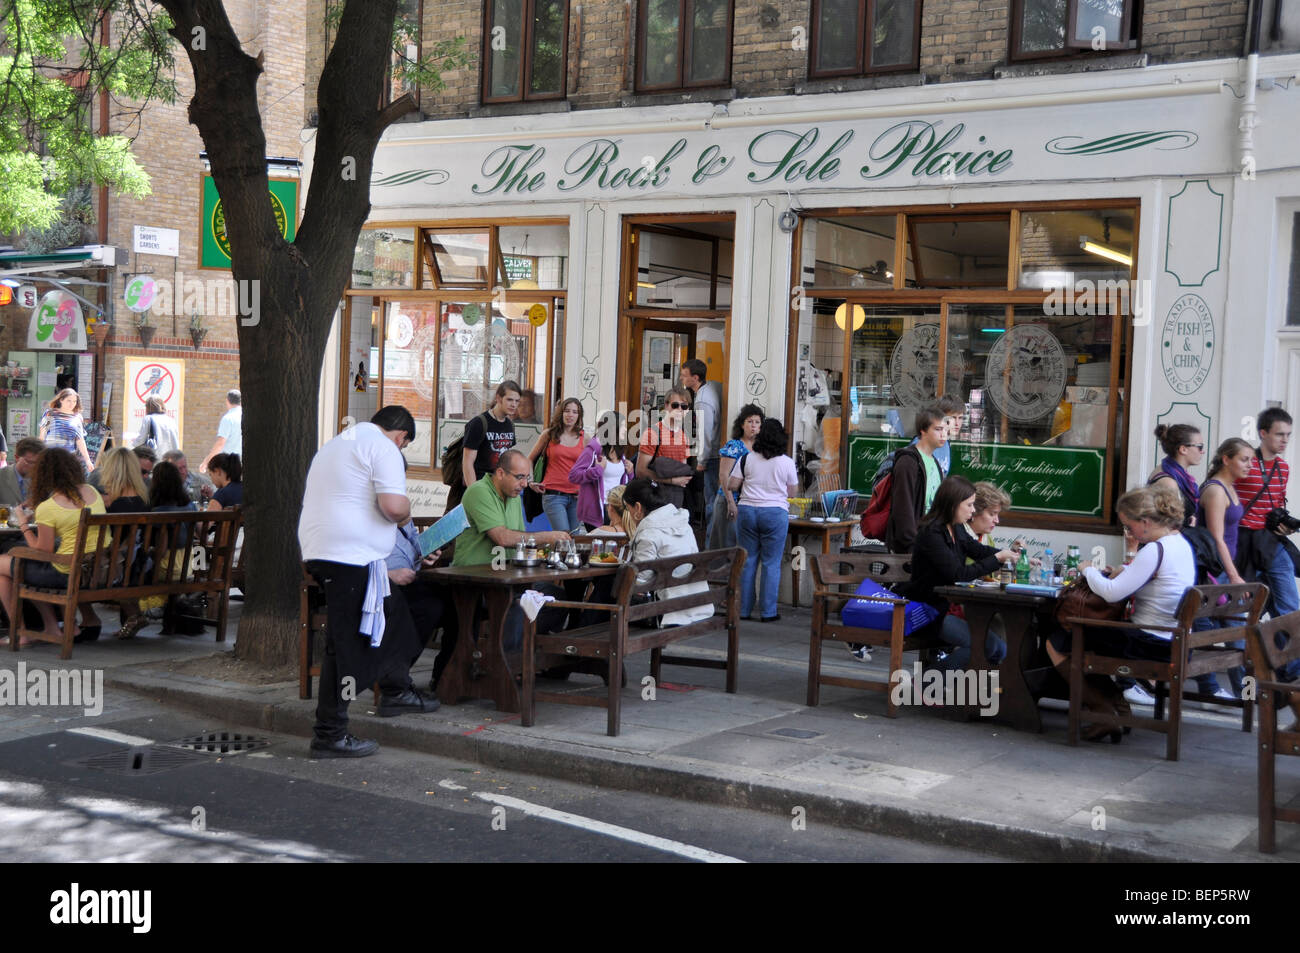 Popular restaurante fish and chips en el Covent Garden de Londres Londres, Inglaterra Imagen De Stock